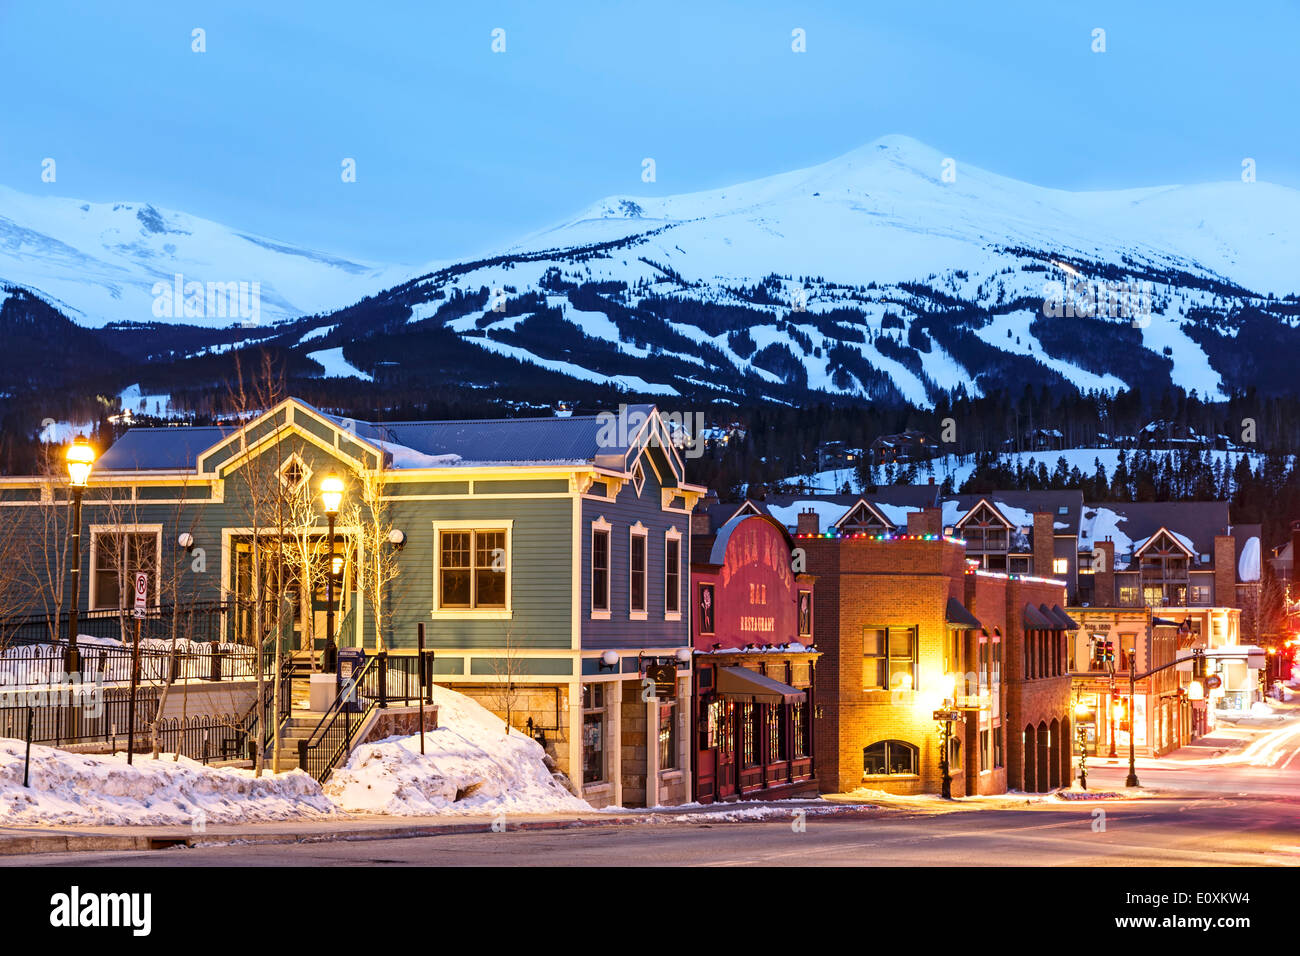 Snow-covered Peak 8, ski area and Downtown Breckenridge, Colorado USA Stock Photo